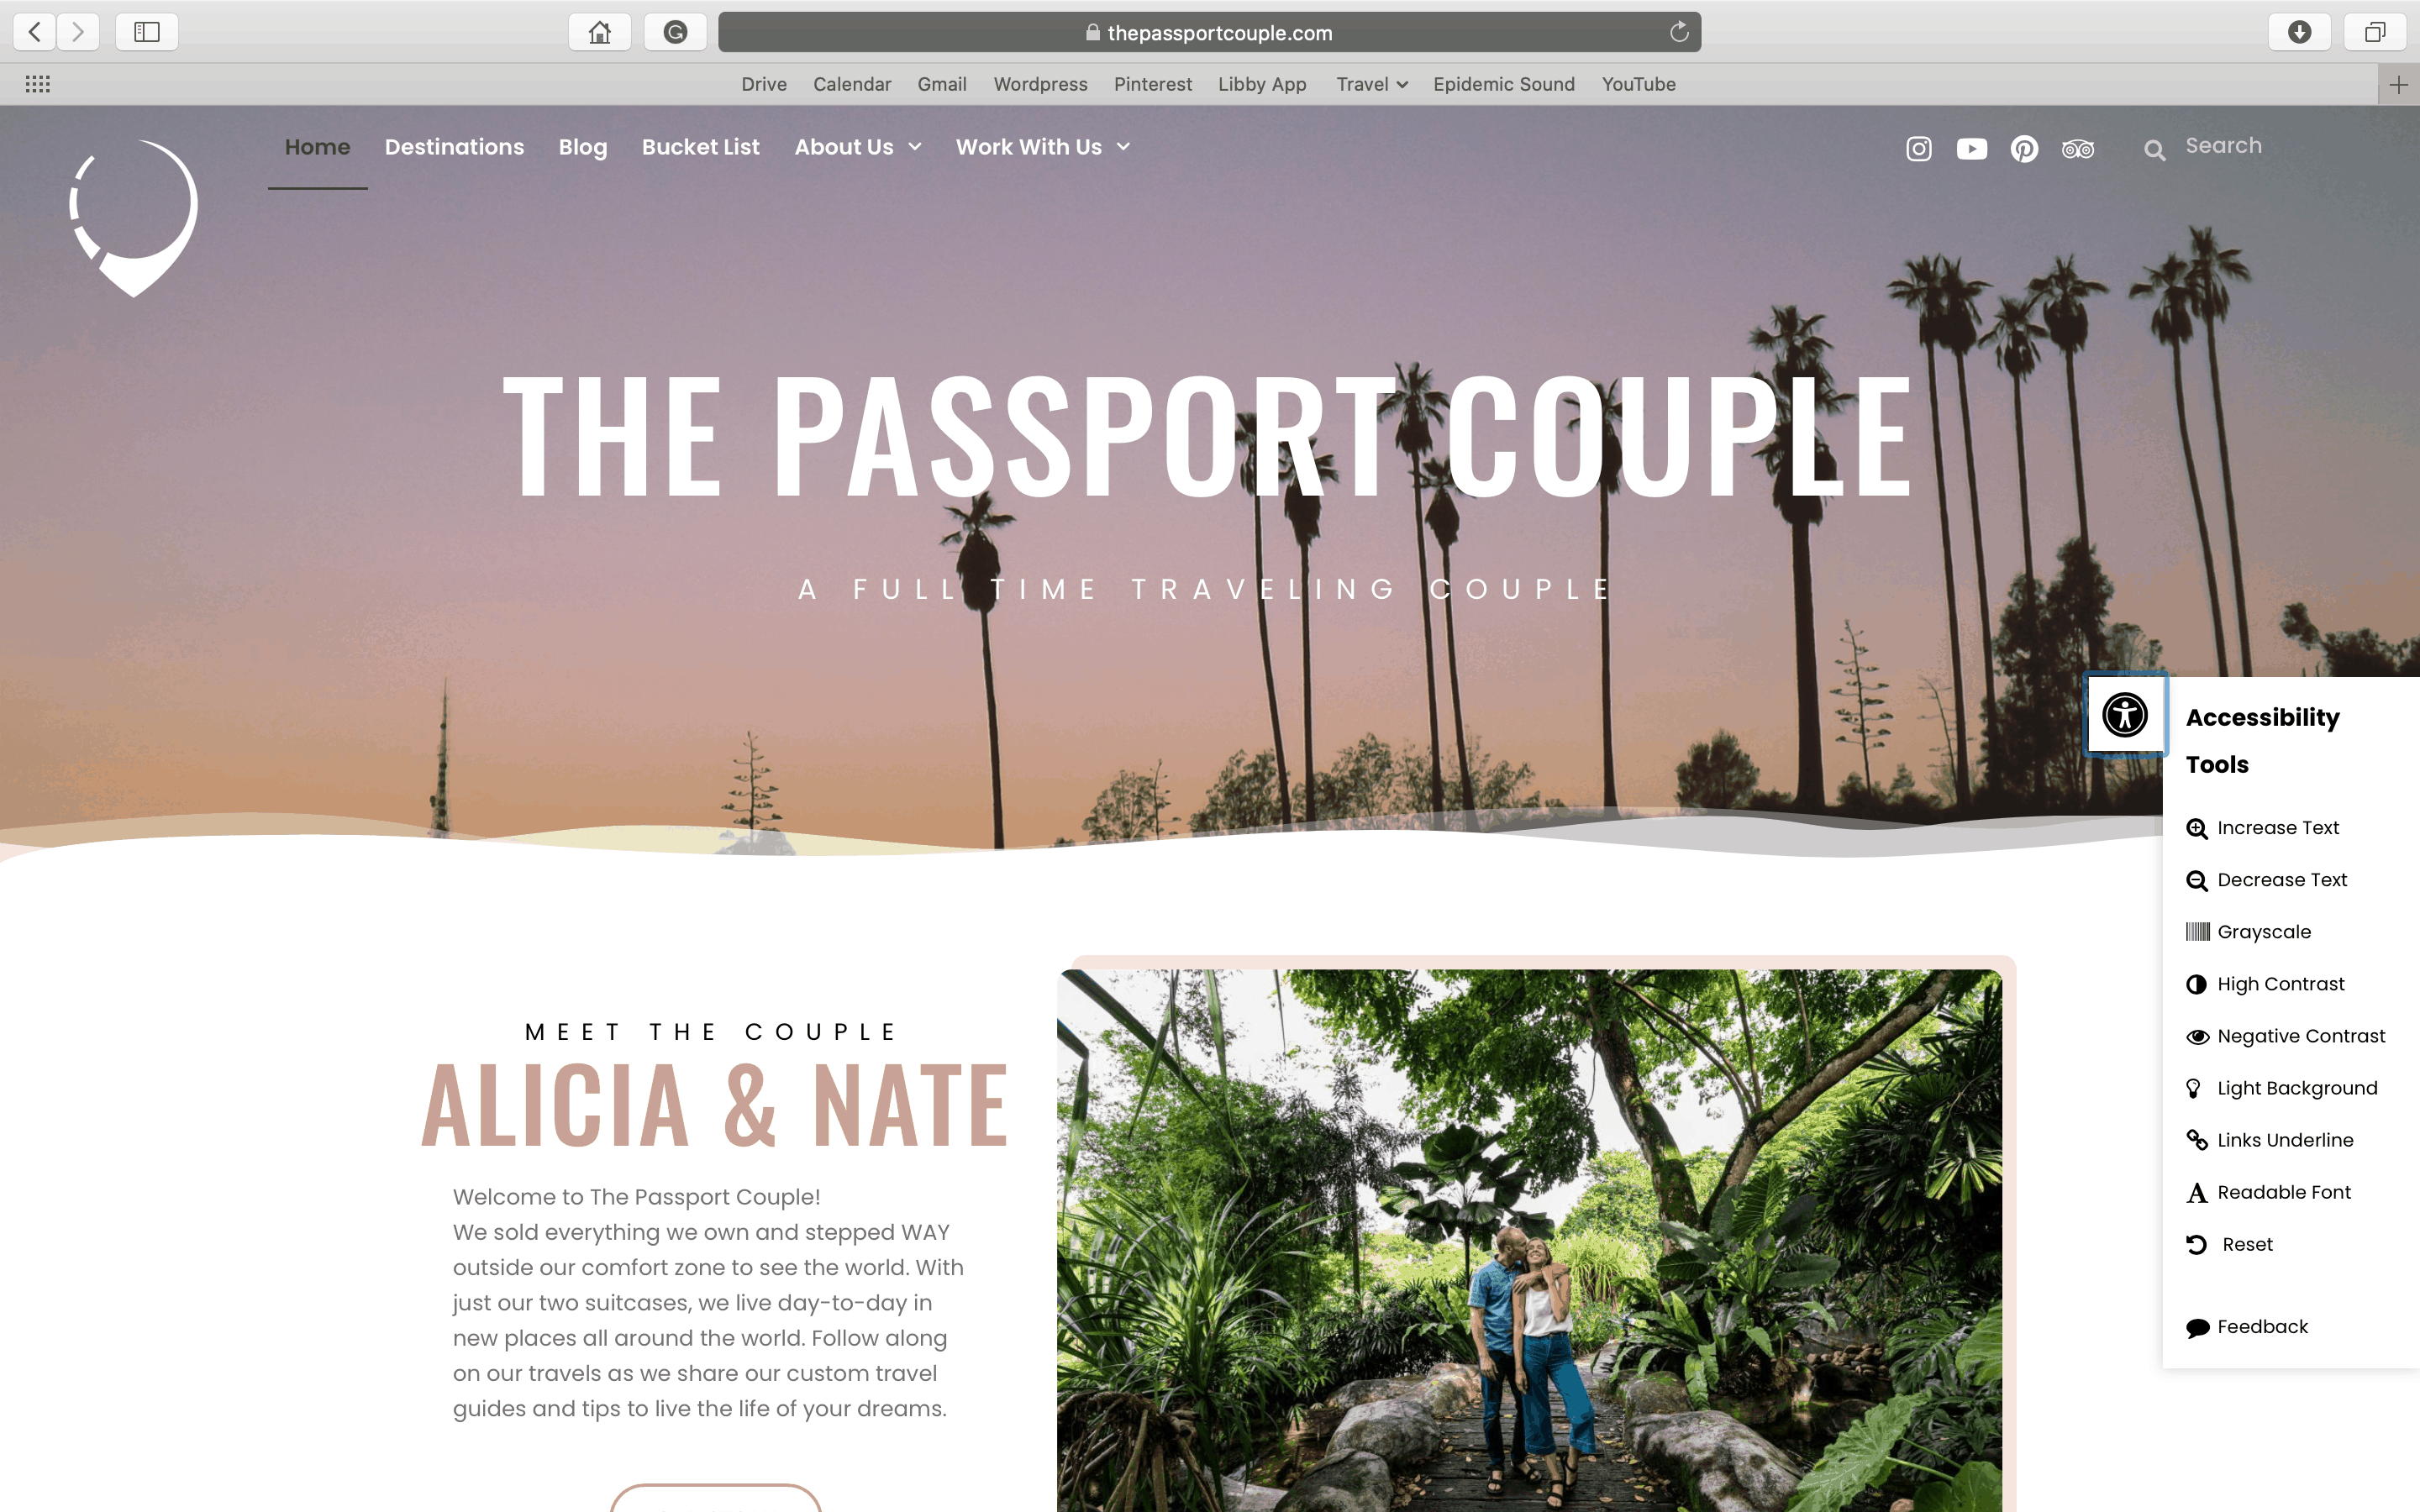 Accessibility Toolbar on The Passport Couple Homepage